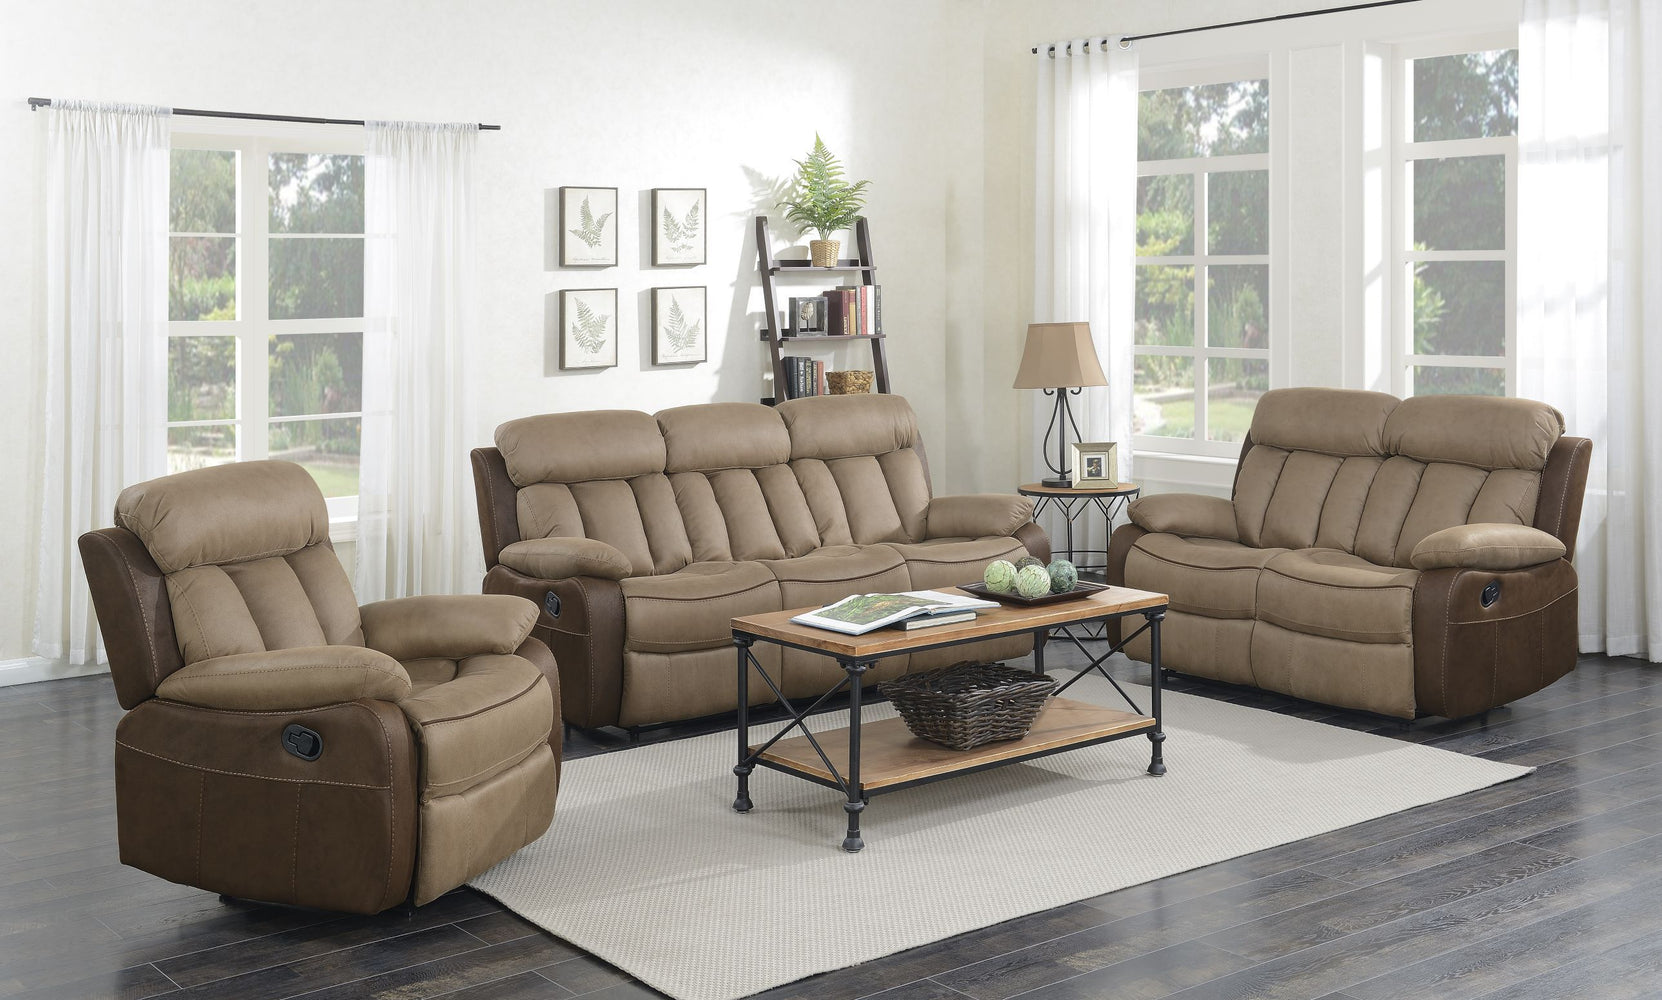 Furniture Wholesale in California. Best quality - value items. Great curated home furnishings selection.